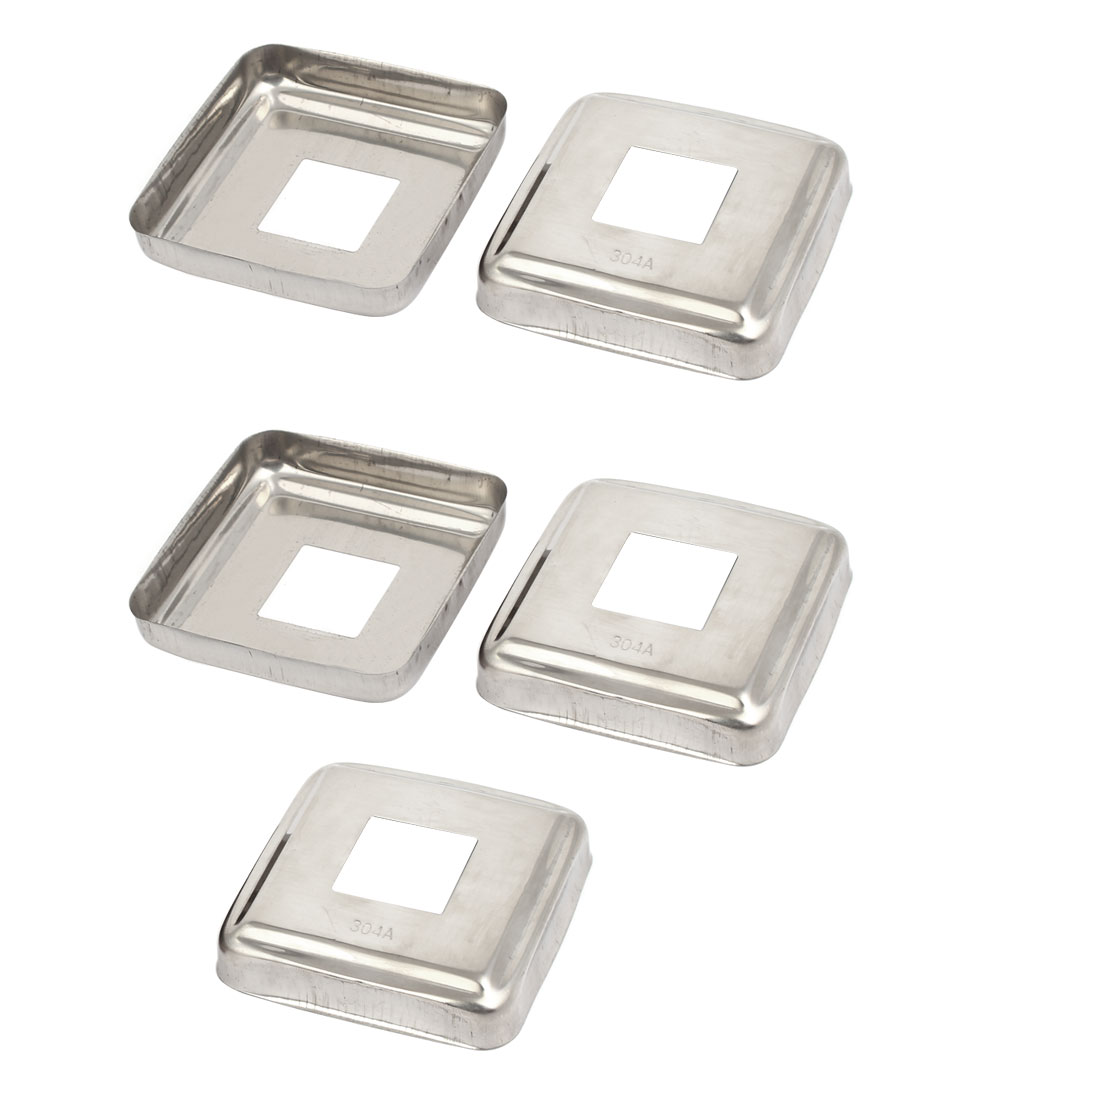 "5pcs Ladder Handrail Hand Rail 1"" x 1"" Post Plate Cover 304 Stainless Steel"